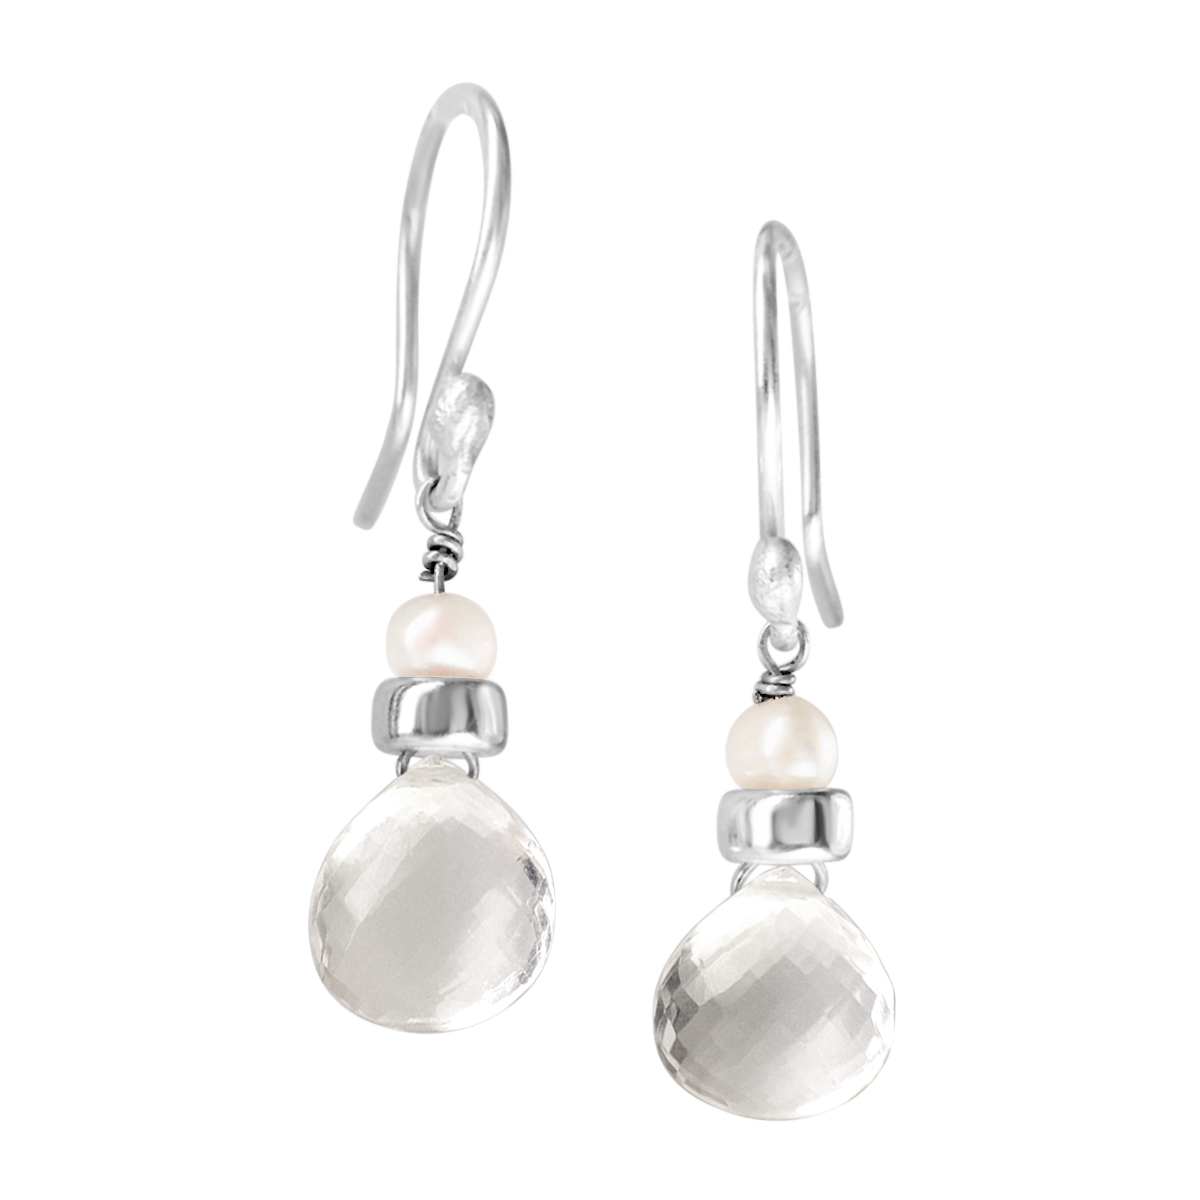 Perfume Bottle crystal quartz white pearl earrings